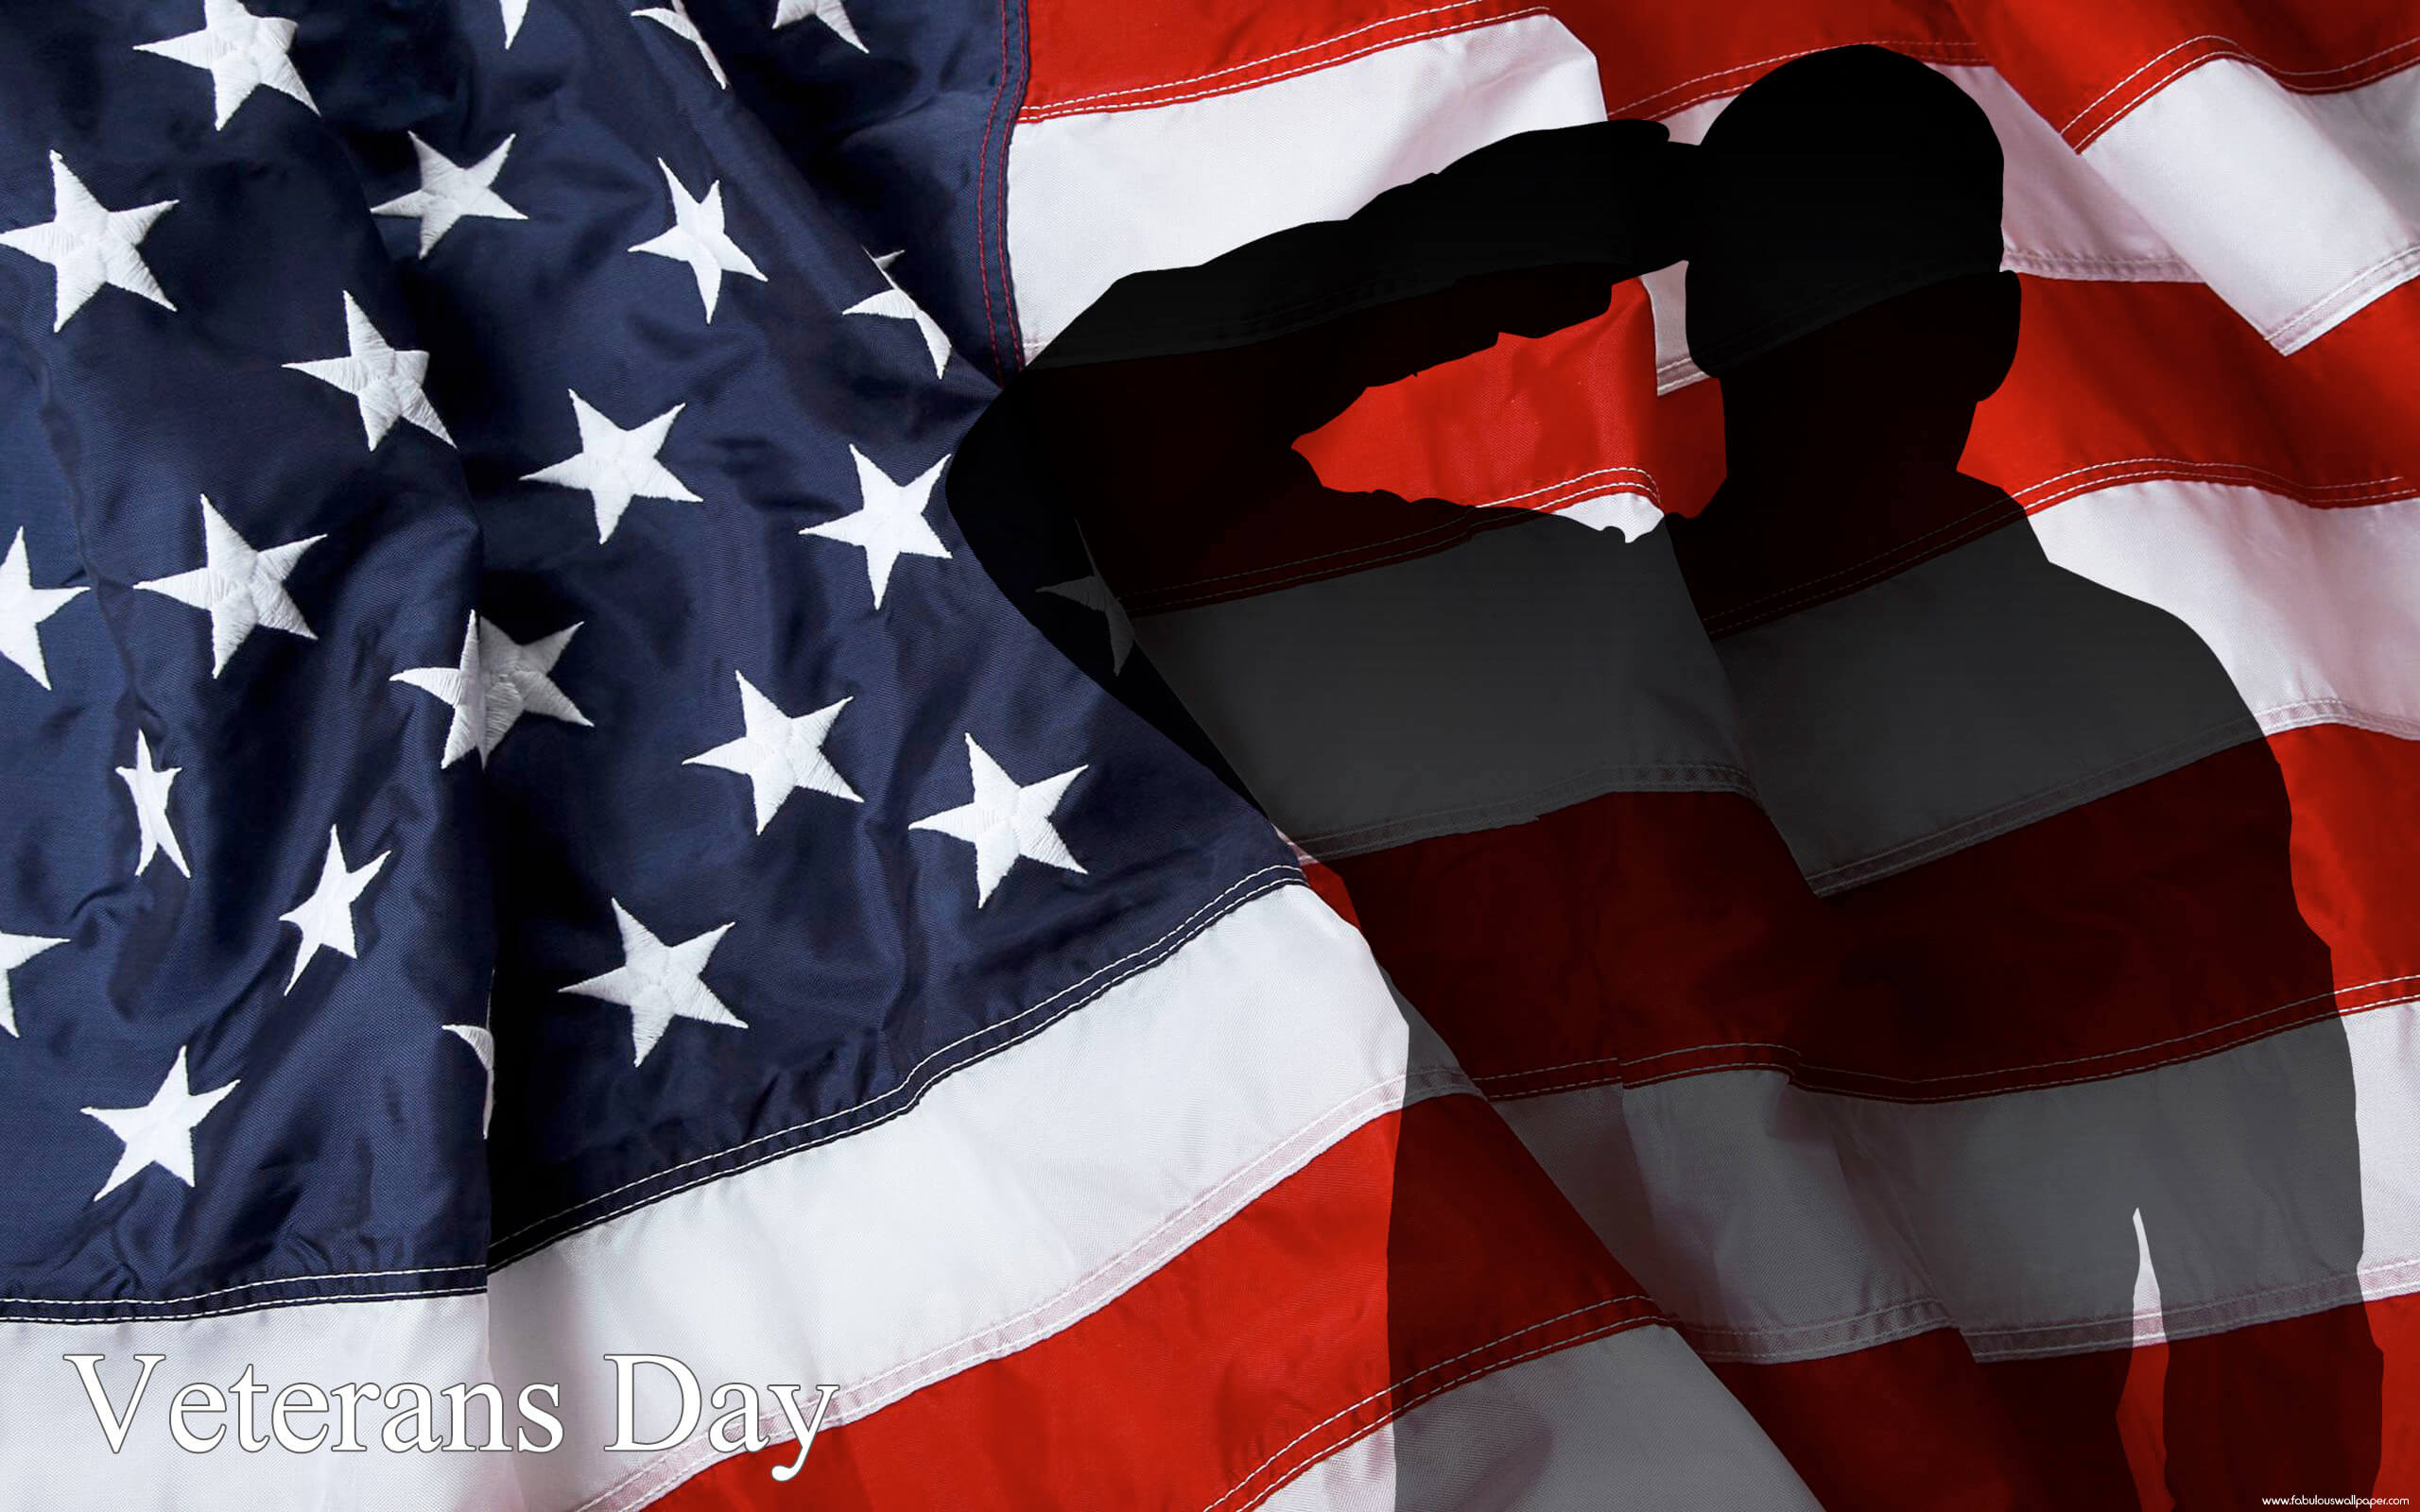 veterans day usa flag salute silhouette hd wallpaper